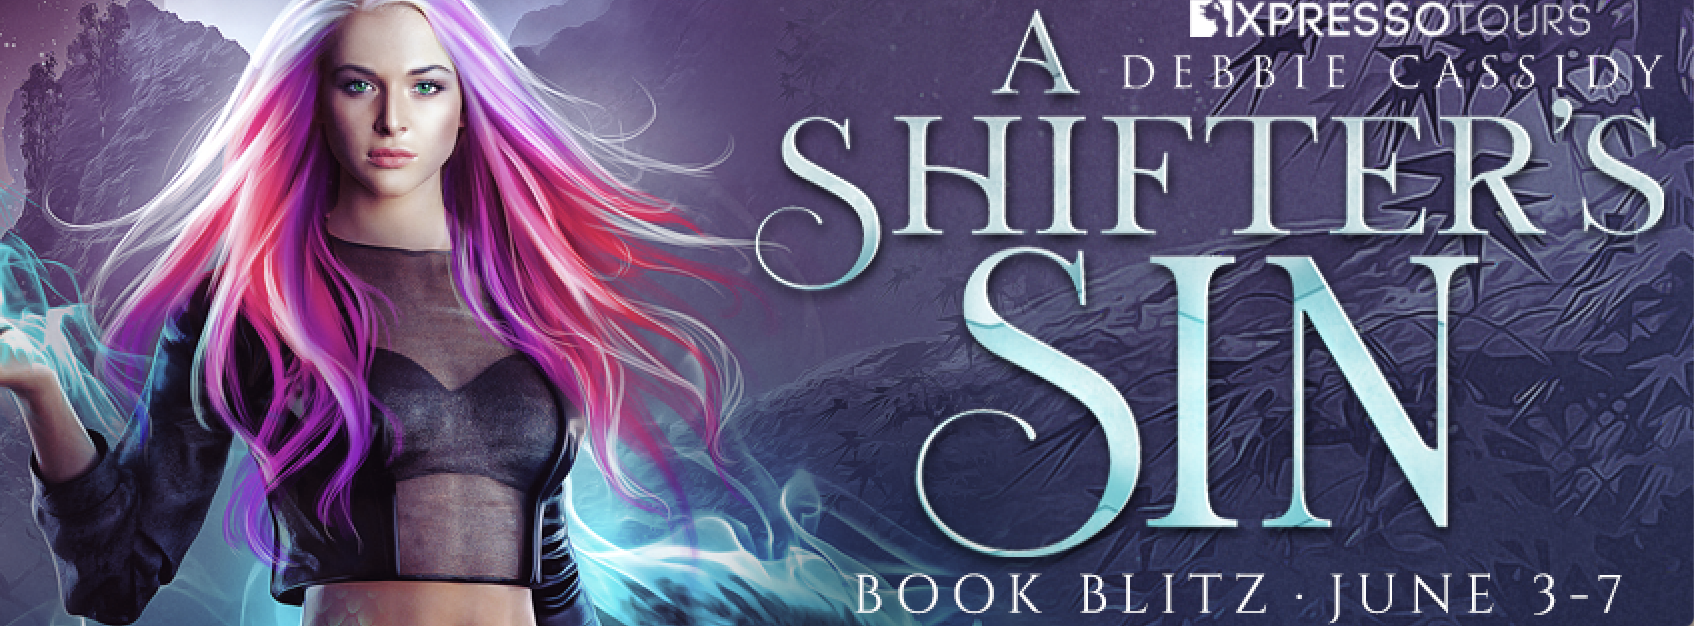 A Shifter's Sin by Debbie Cassidy